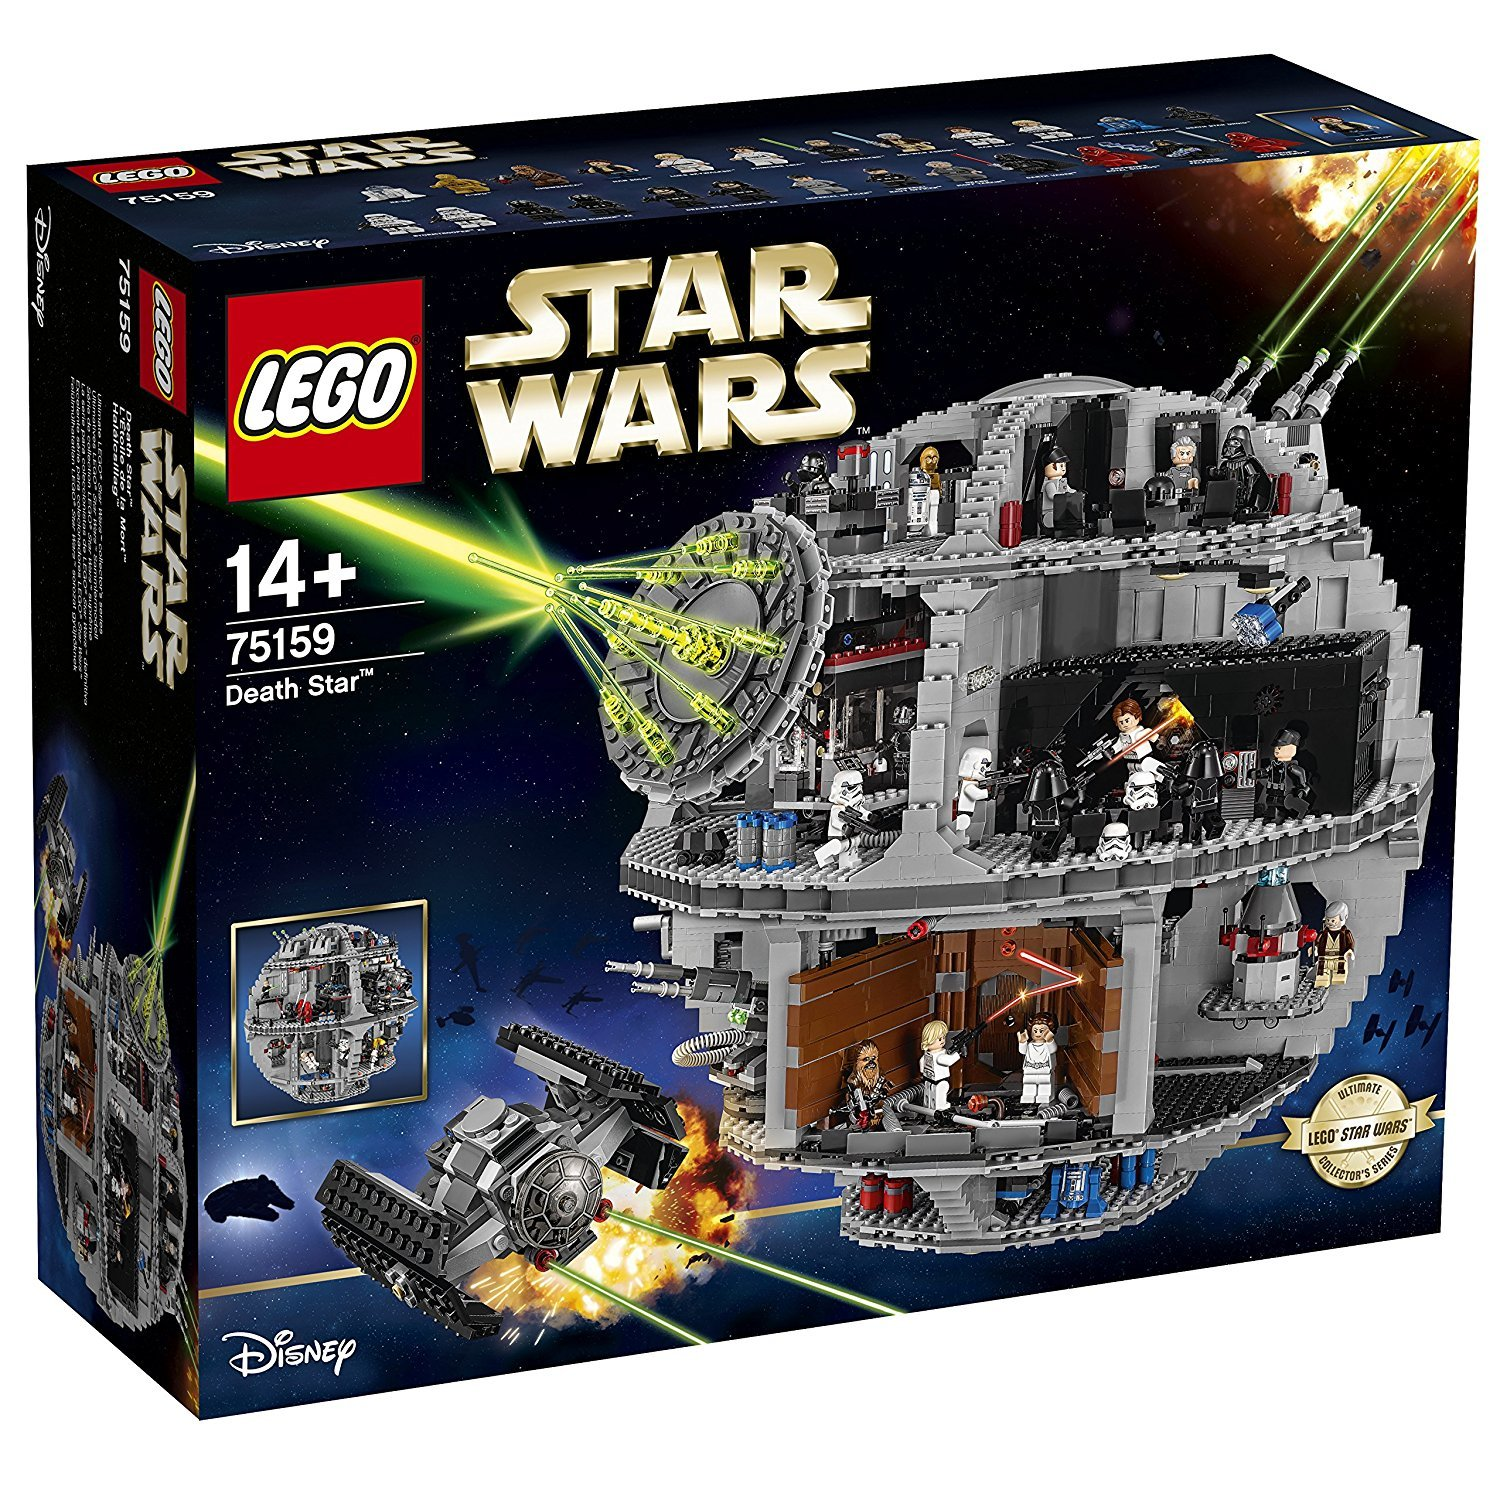 LEGO Star Wars - Death Star (75159) image